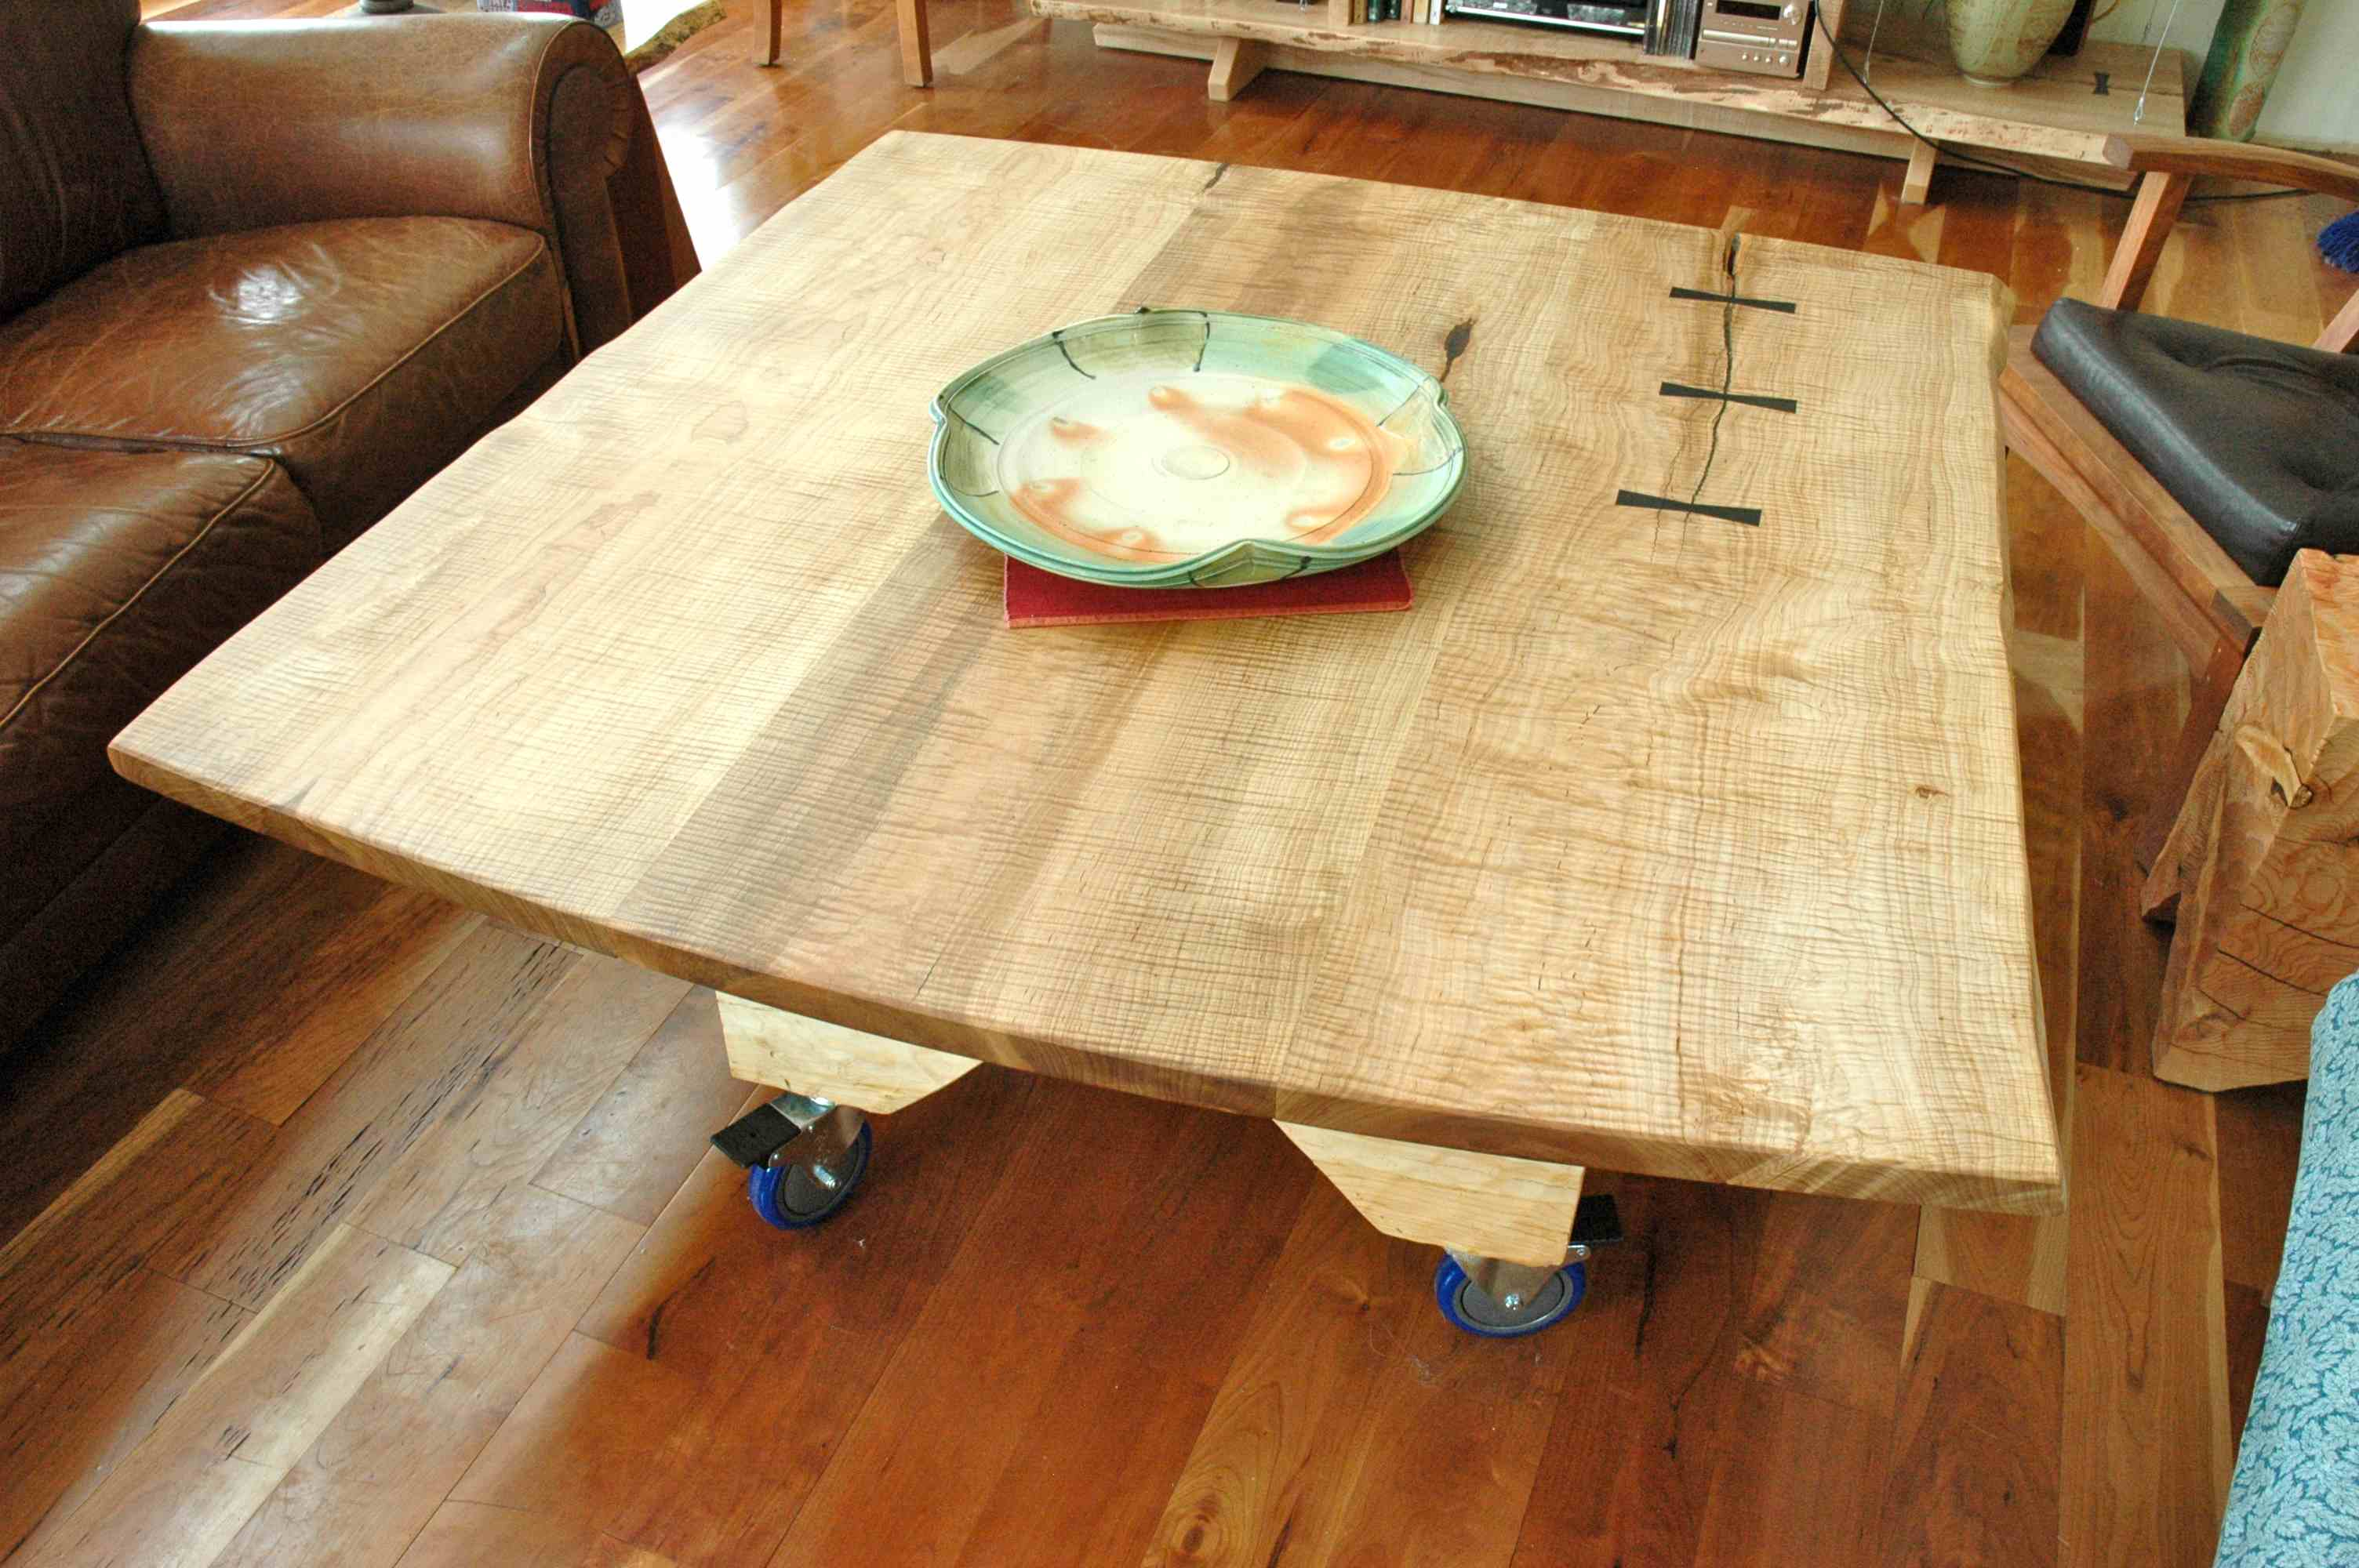 Rustic curly maple wood slab custom dining table with sculpted fir base and  clean inlaid Ebony. Maple Dining Tables  Handmade By Dumond s Custom Wood Furniture